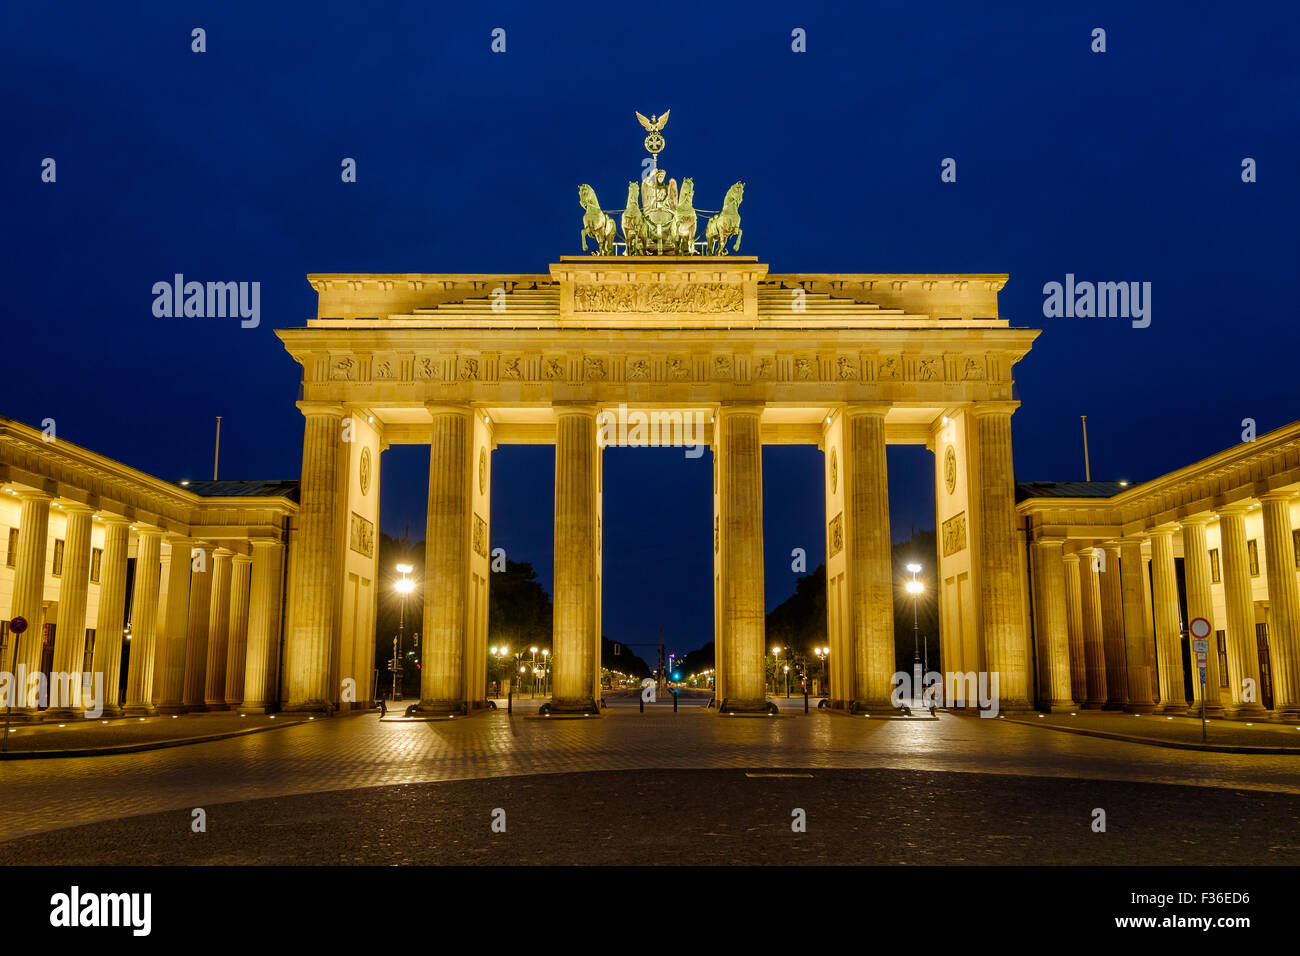 The Brandenburg Gate / Brandenburger Tor Berlin, Germany lit by floodlights in the early hours of the morning. - Stock Image